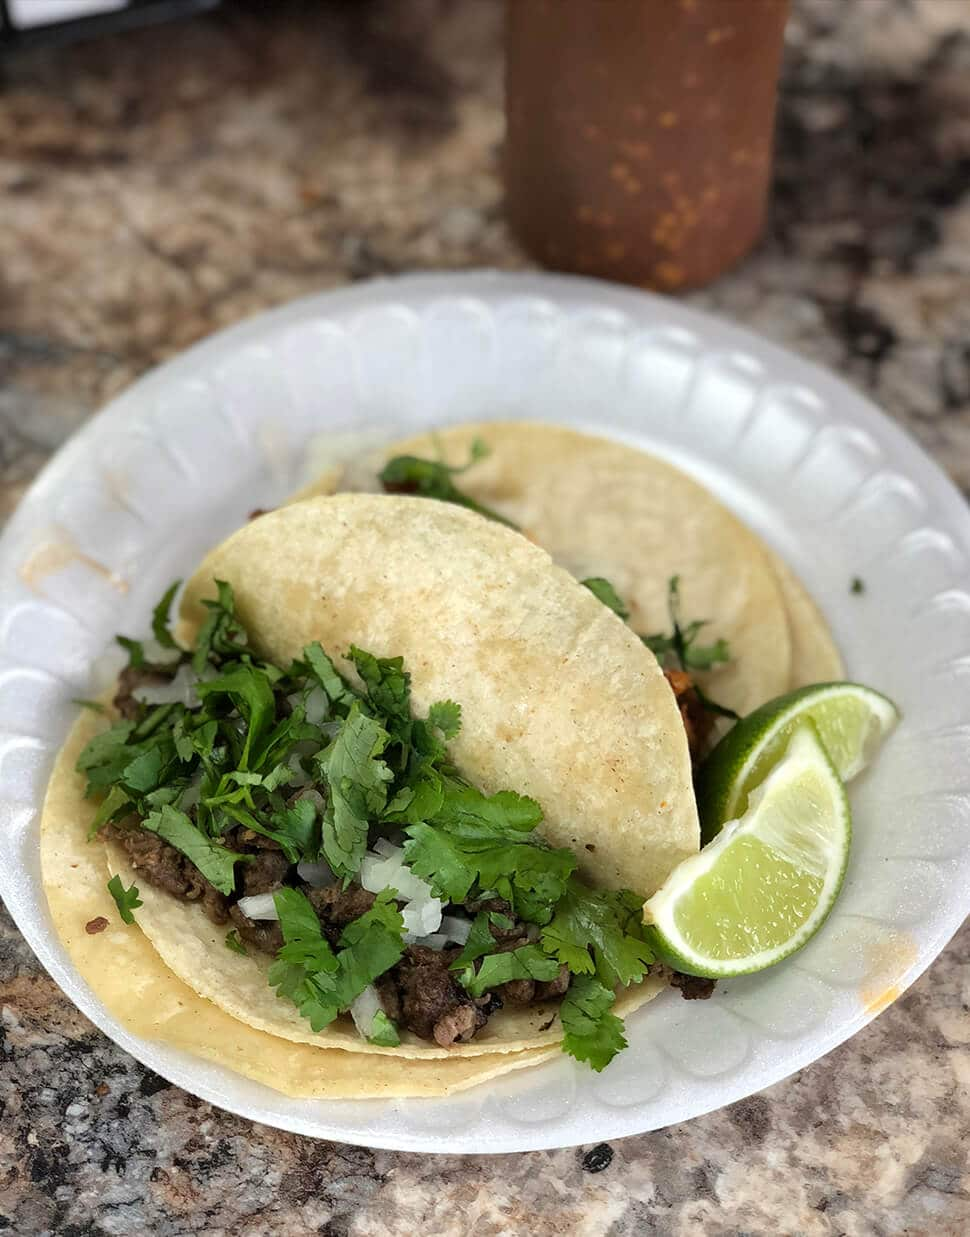 The beef taco from La Surena, best restaurants Amelia Island and a local secret.